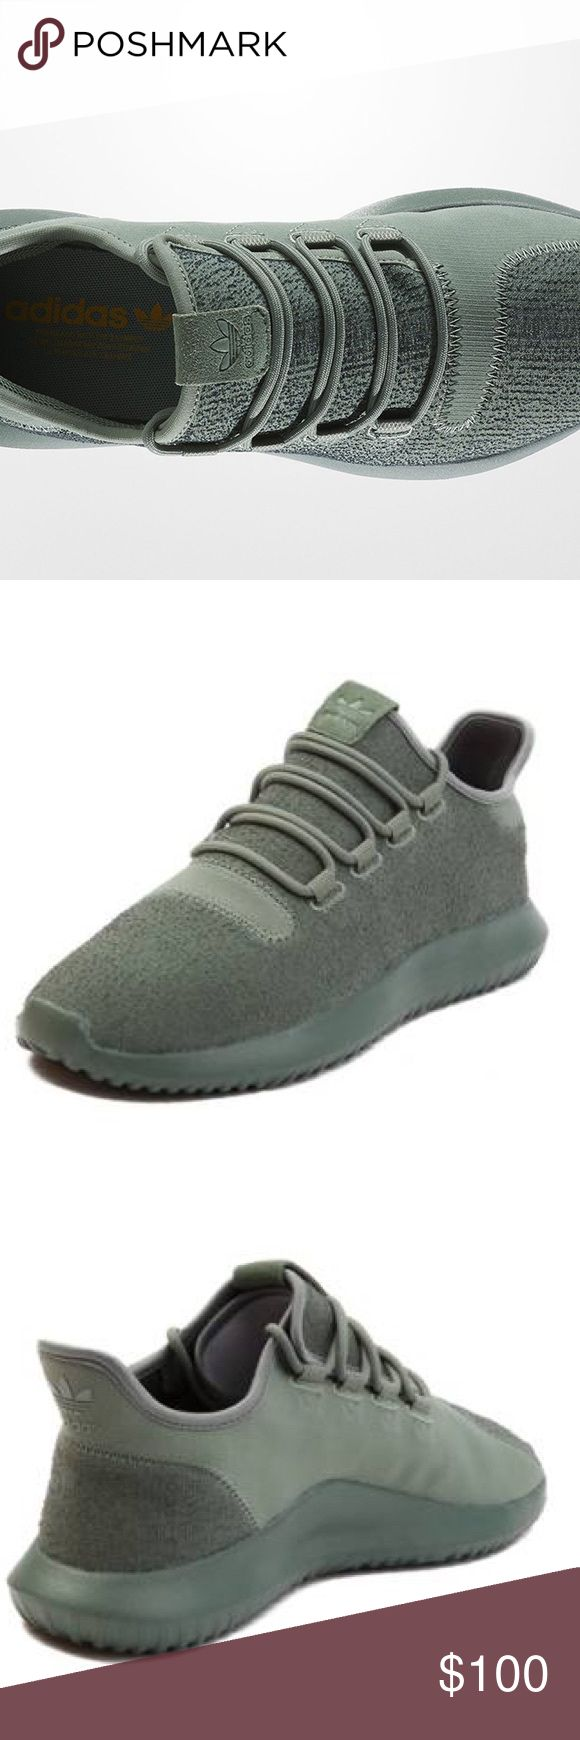 Adidas tubular Shadow Enjoy stylish simplicity in the Men's adidas Tubular Shadow Casual Shoes. Super light and breathable knit upper Rope laces Low-cut design for enhanced mobility Tubular midsole for plush cushioning The adidas Tubular Shadow is Imported The Men's adidas Tubular Shadow Casual Shoes push the boundary on style like never before. Dress the Shadow up with a pair of khakis and a button up or dress it down with your favorite joggers and a long hem tee, either way you can't go…